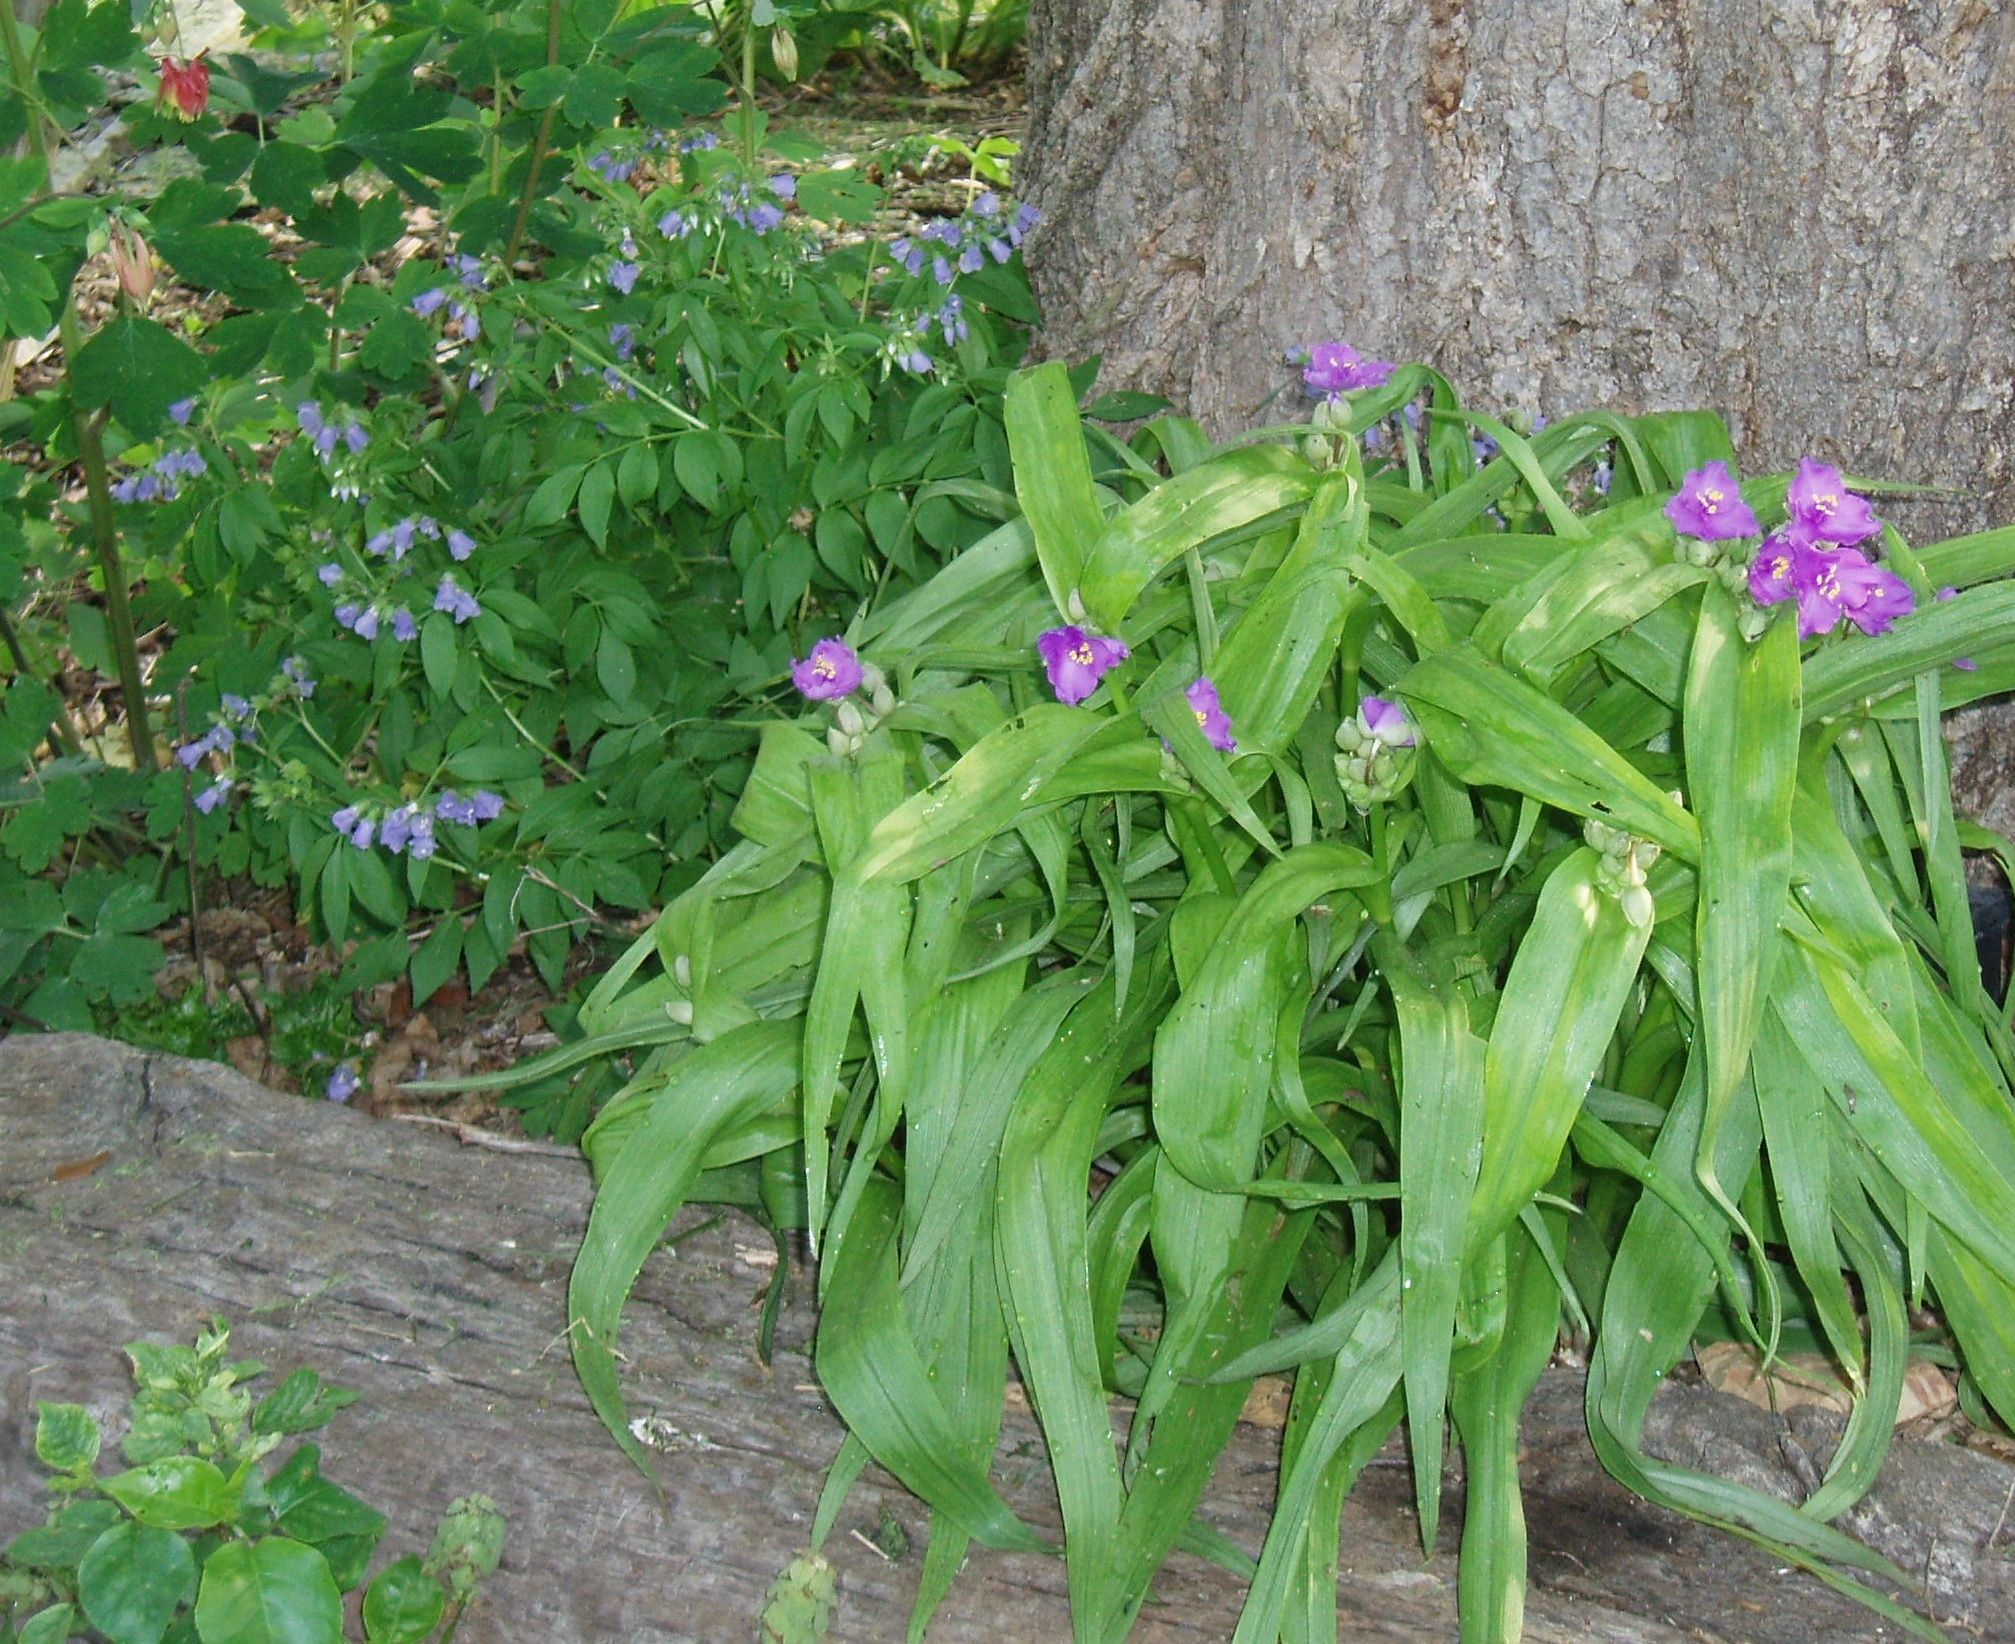 "{""blocks"":[{""key"":""bnlc8"",""text"":"" Tradescantia ernestina Ernest's Woodland Spiderwort - potted plants email john@easywildflowers.com"",""type"":""unstyled"",""depth"":0,""inlineStyleRanges"":[],""entityRanges"":[],""data"":{}}],""entityMap"":{}}"